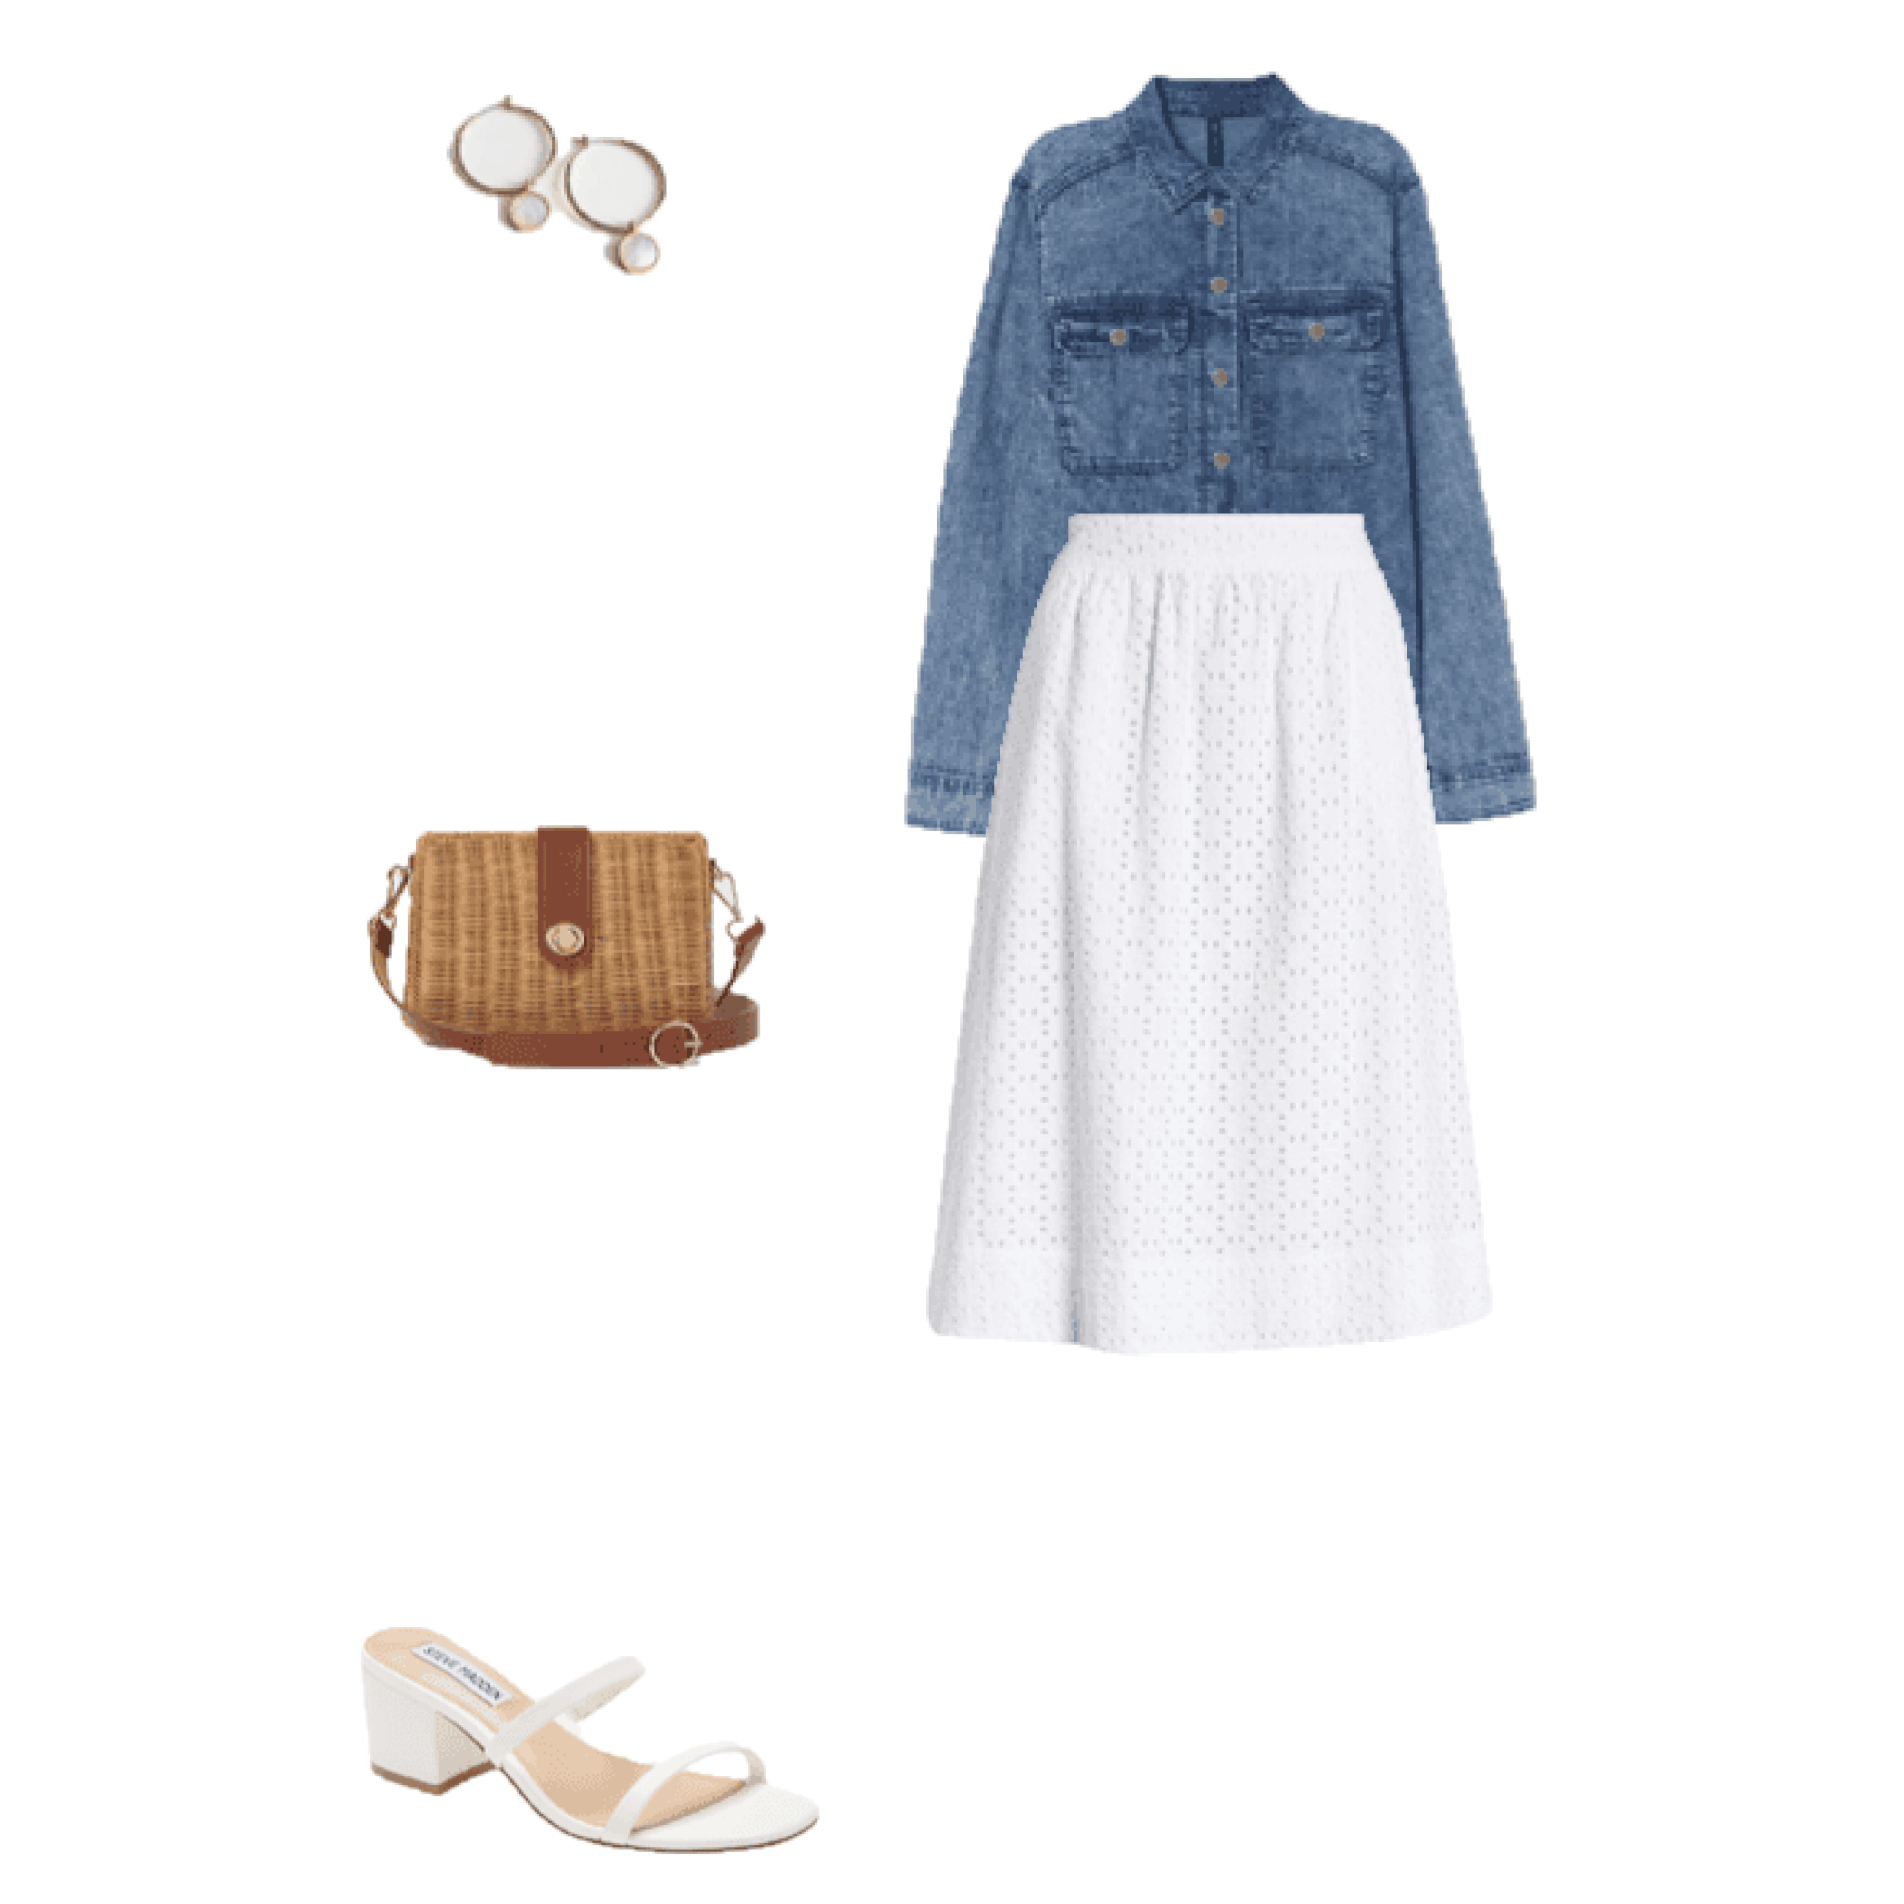 Look of the Day: Denim and White